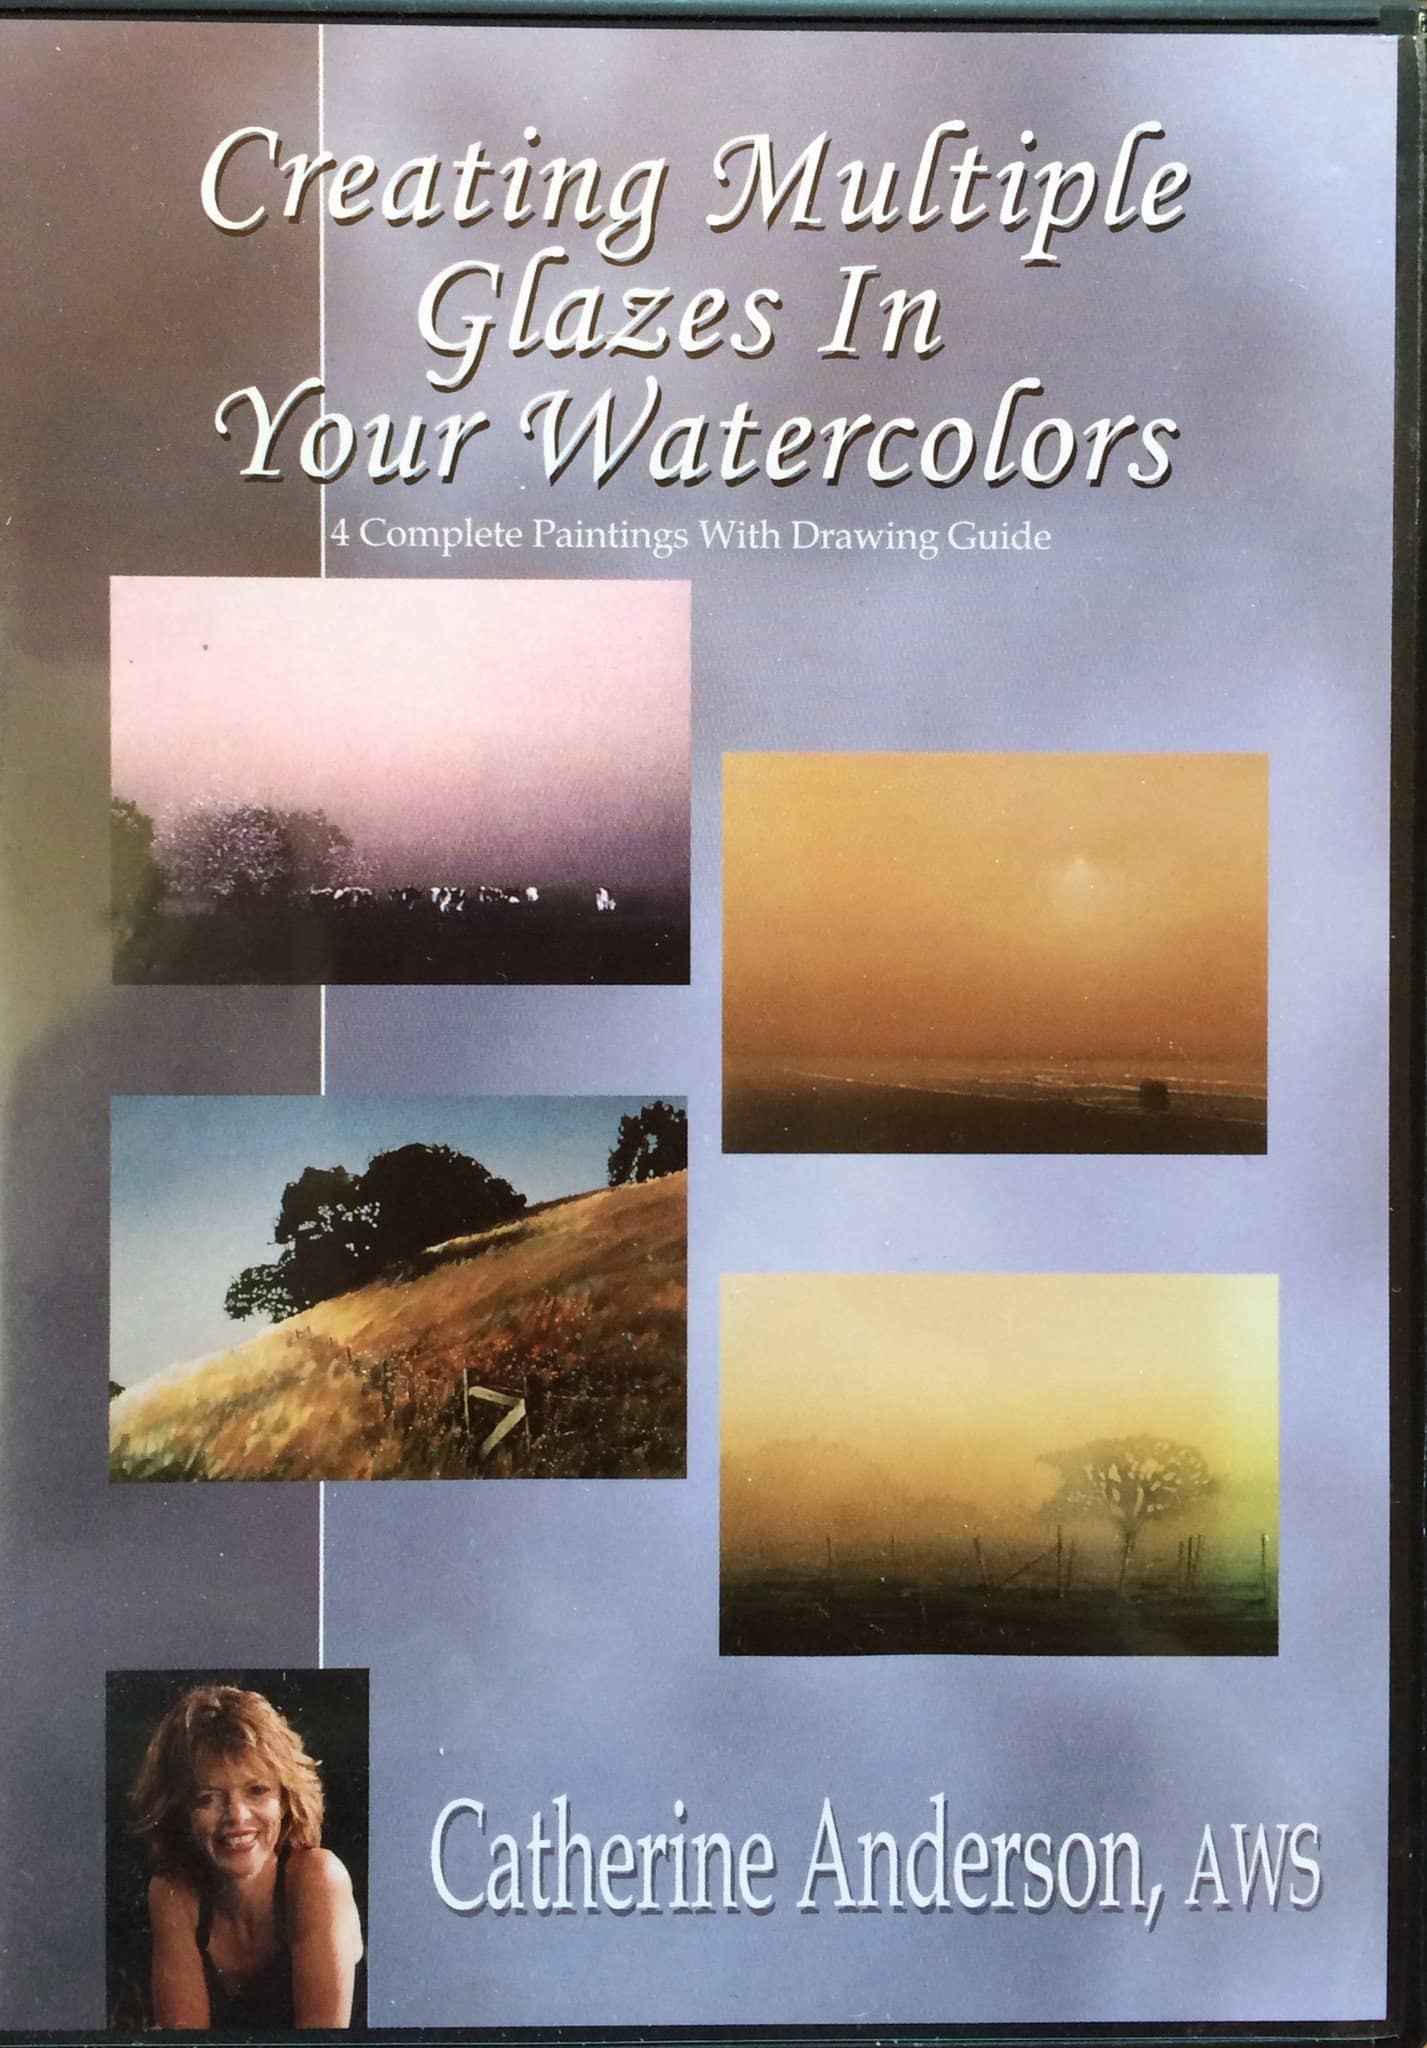 Creating Multiple Glazes in Your Watercolors with Catherine Anderson, AWS, NWS Art Instruction Video-DVD from Creative Catalyst